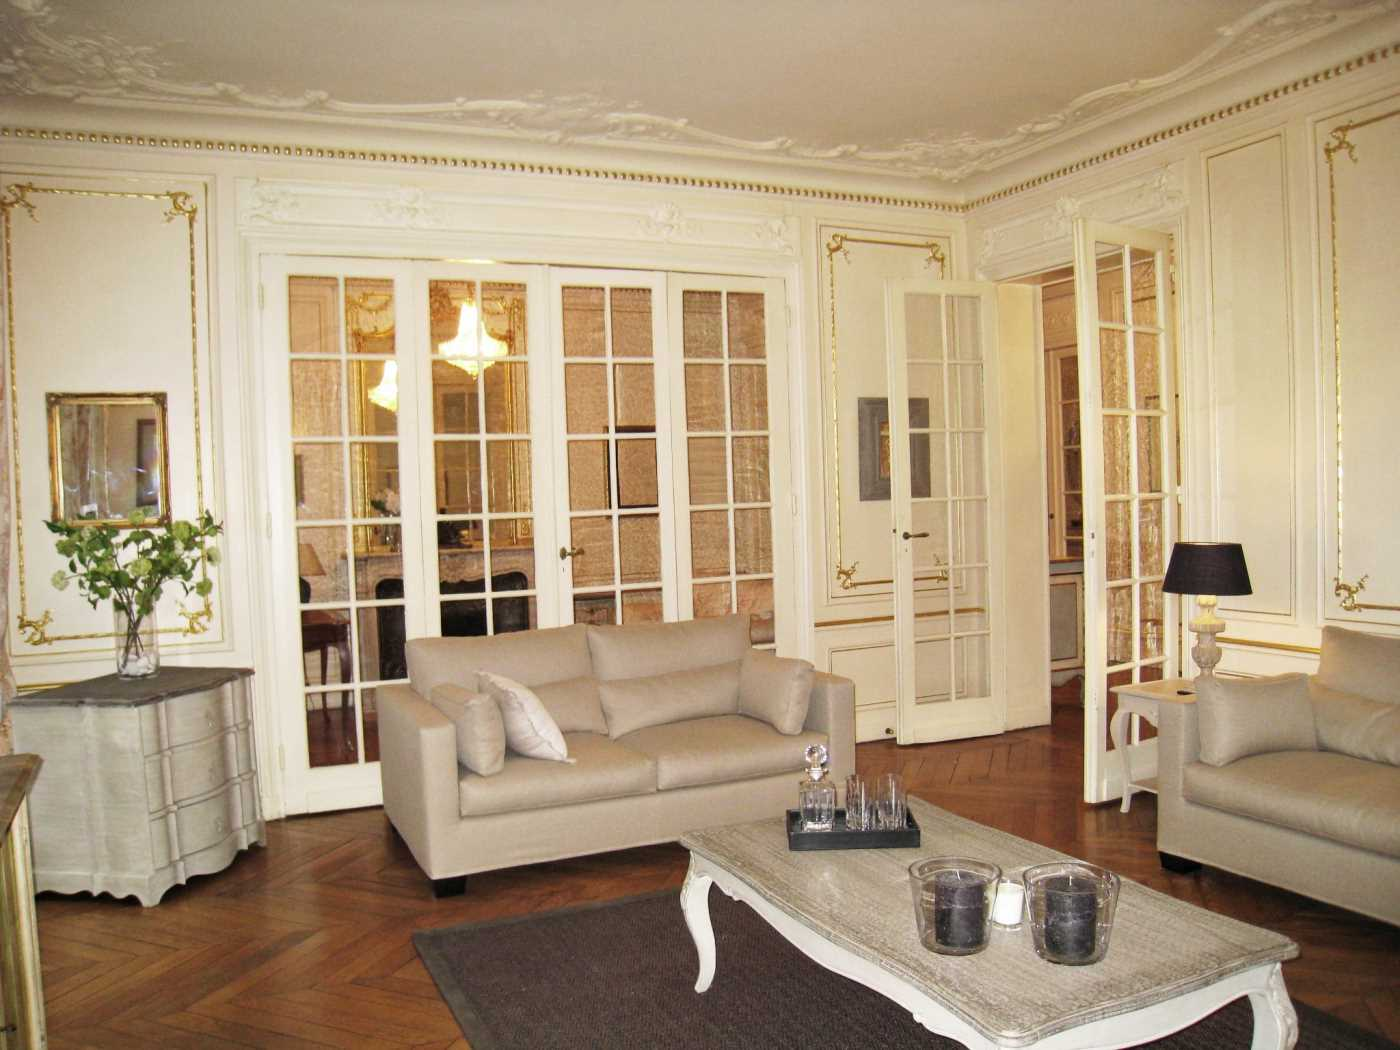 location appartements meubles paris - location appartement meubl paris 17 cattalan johnson